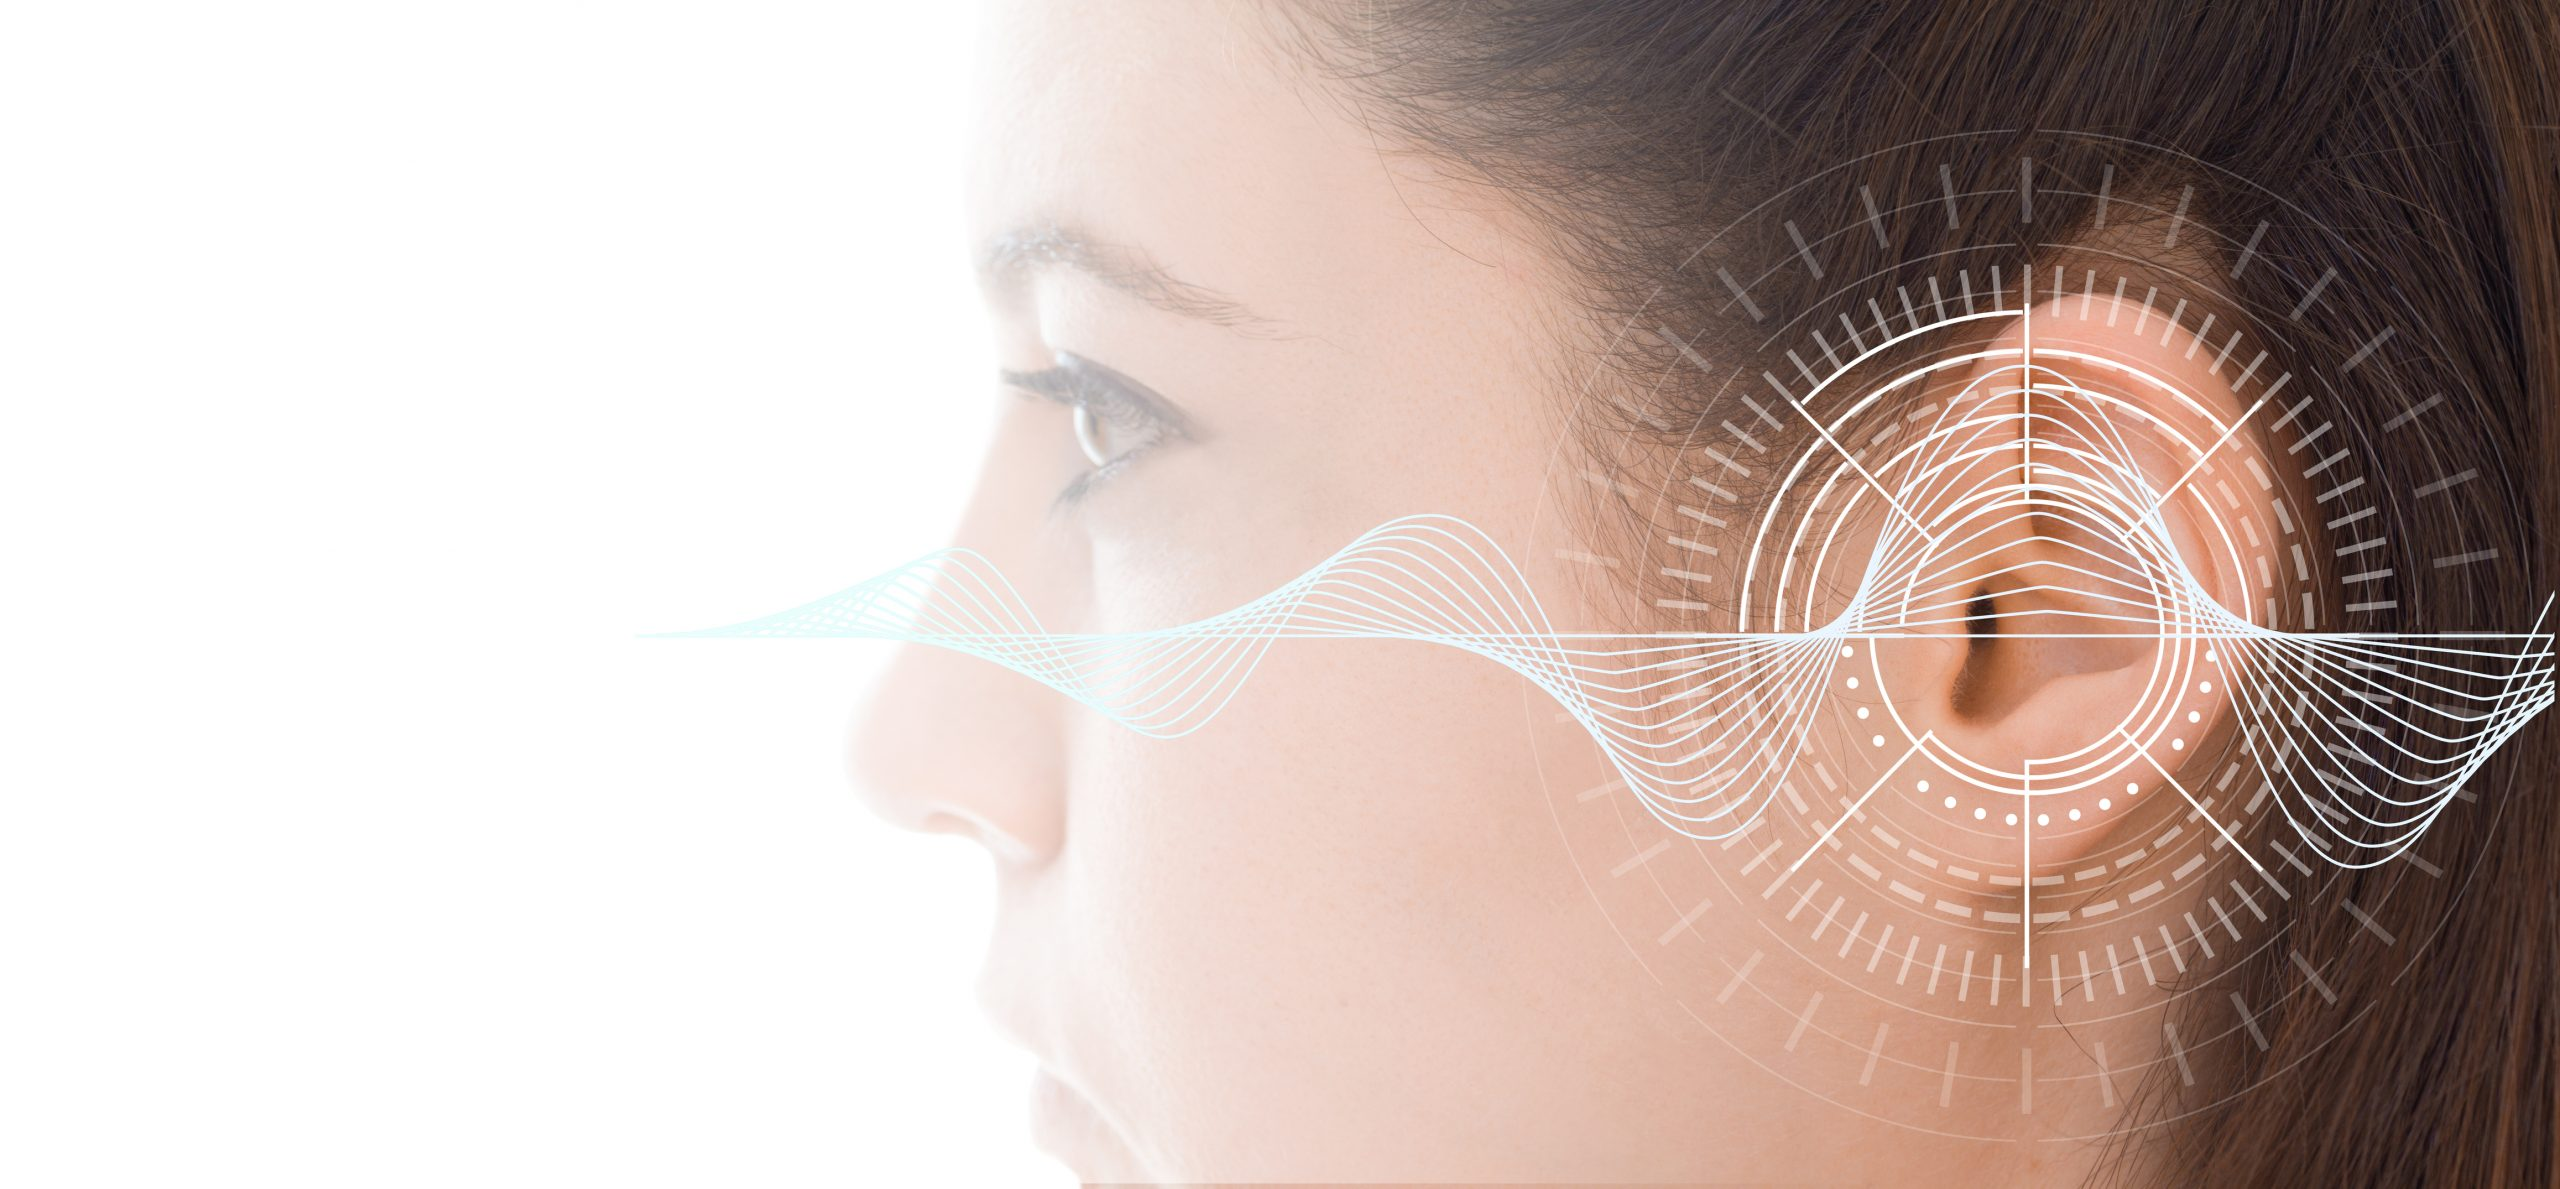 Hearing test showing ear of young woman with sound waves simulation technology - isolated on white banner